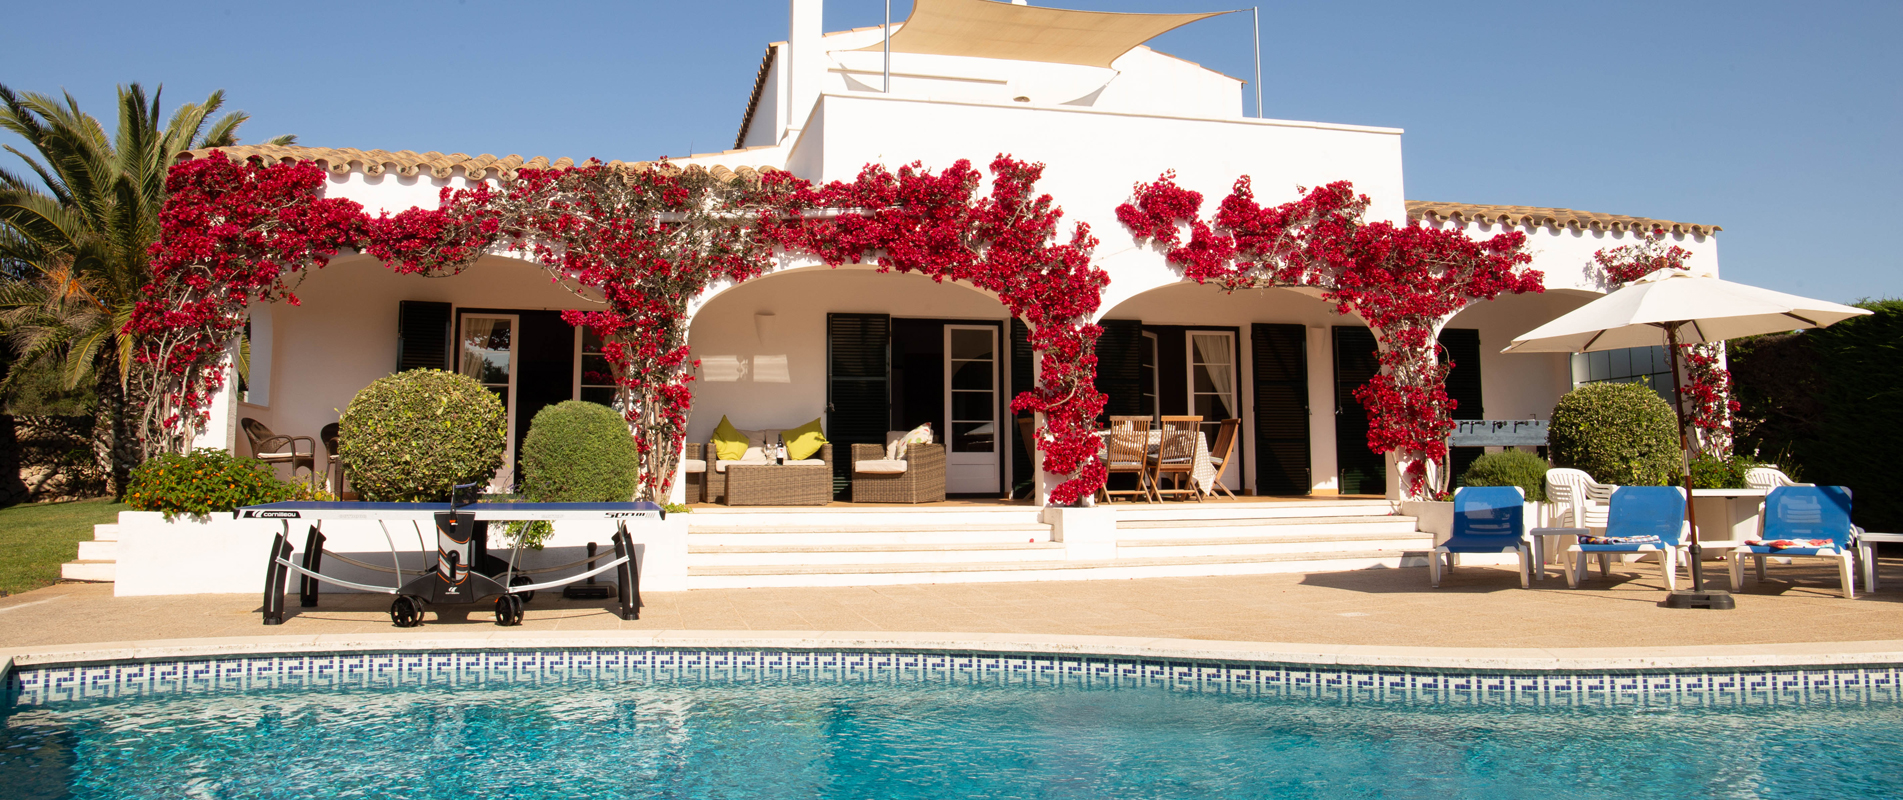 Villas to Rent in Menorca